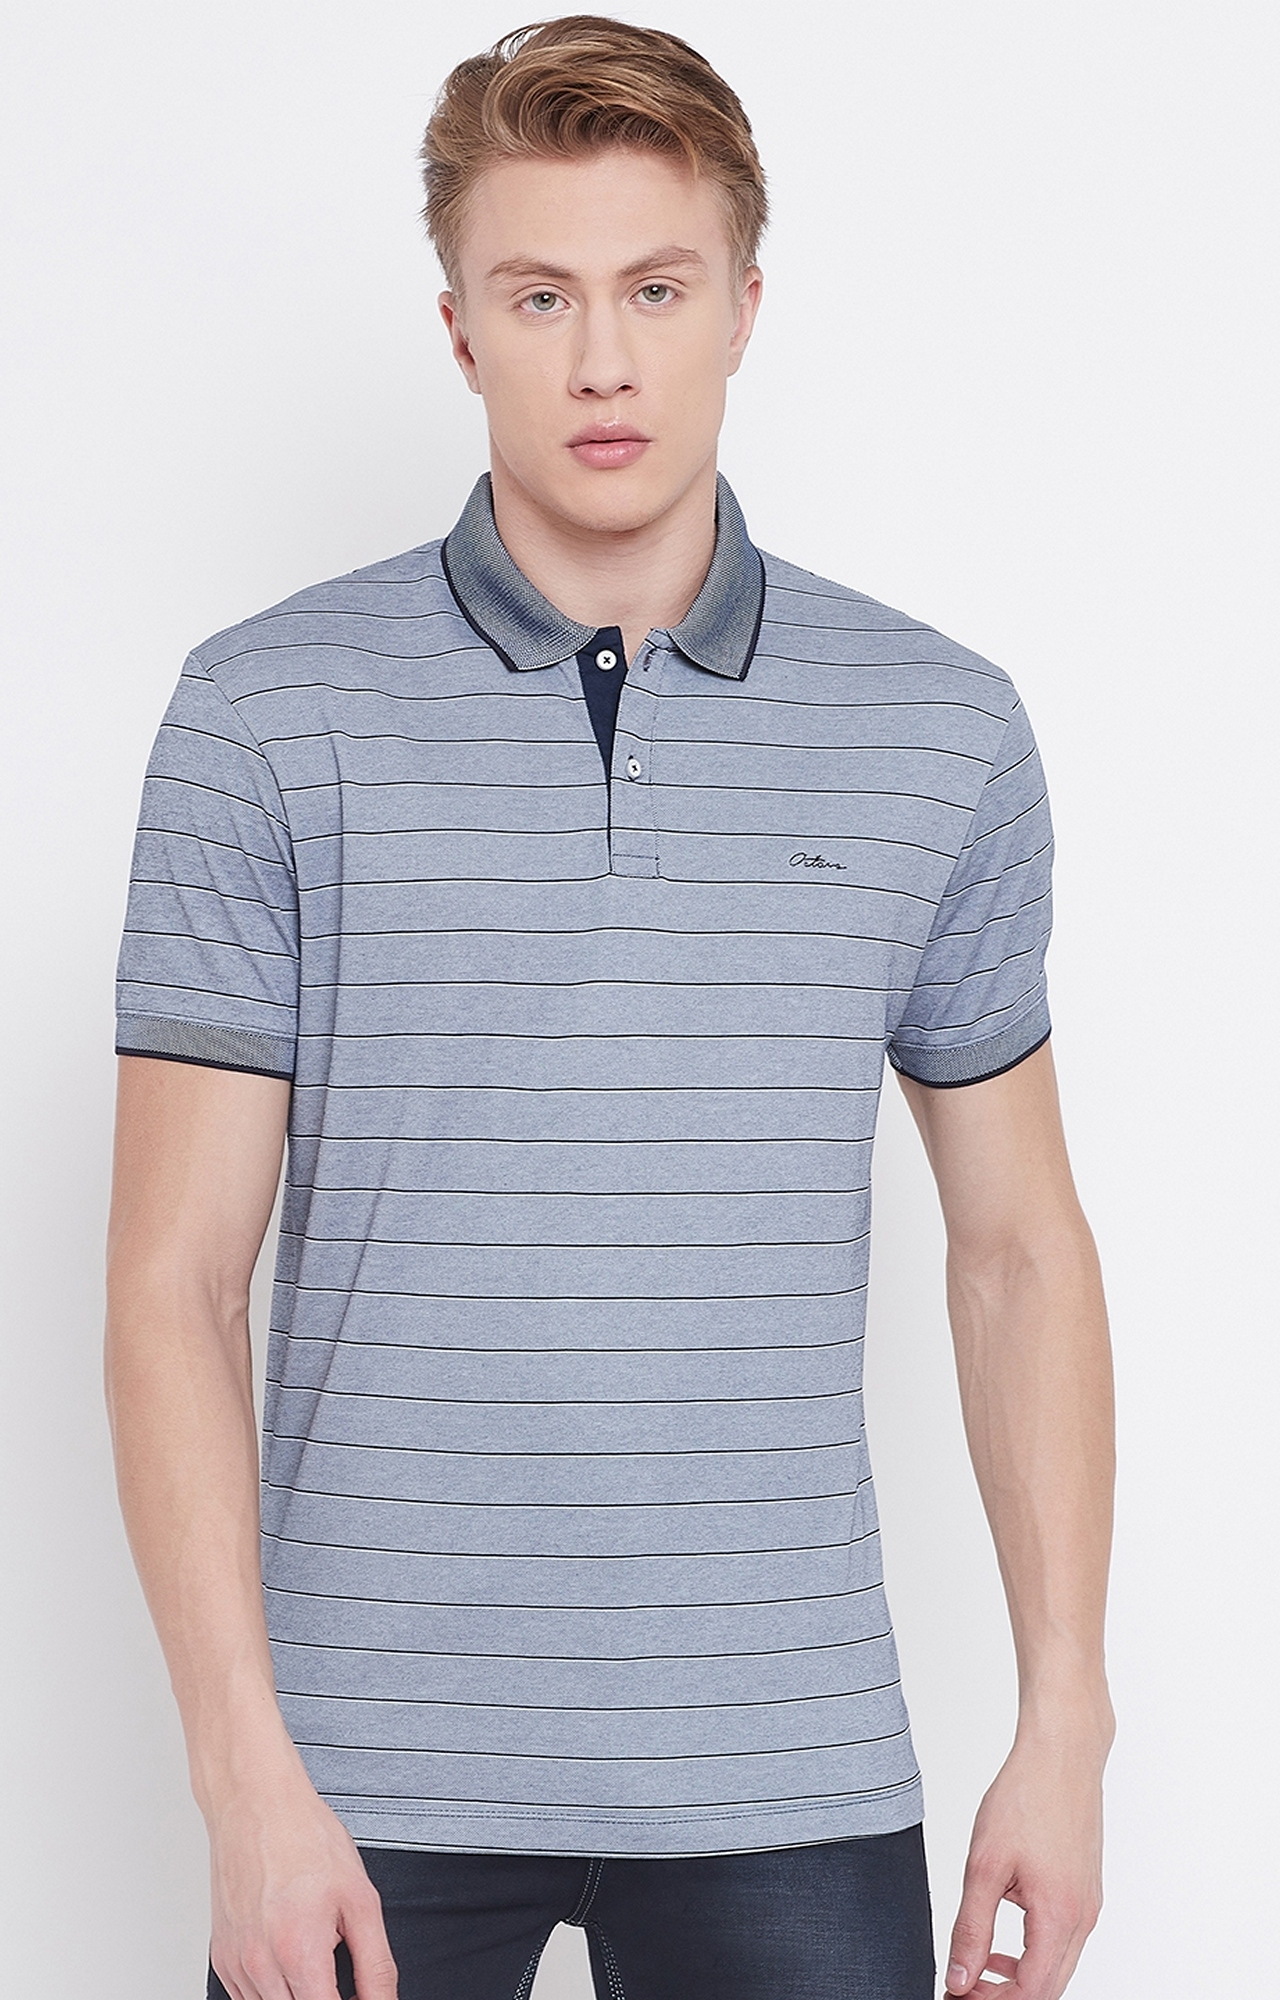 OCTAVE   Navy Striped Polo T-Shirt